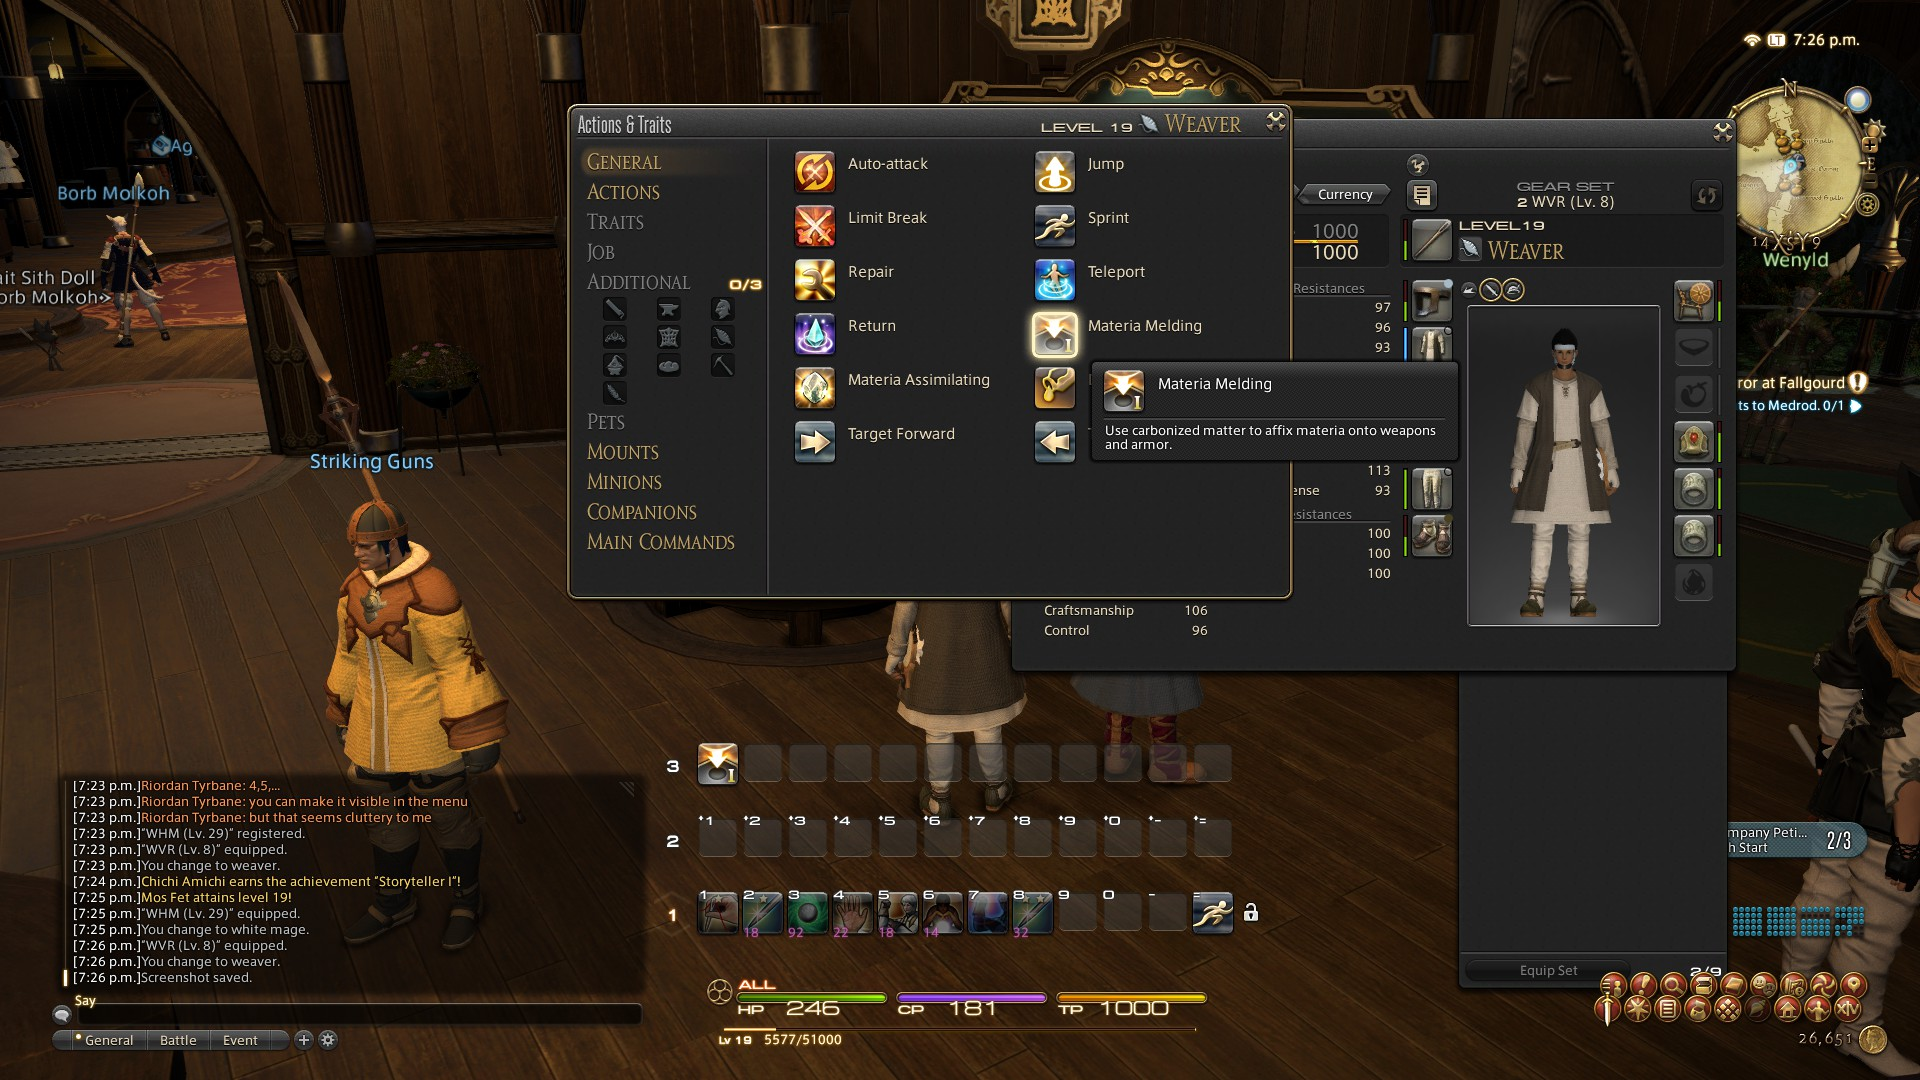 Final Fantasy XIV - Affixing Materia(s) on your Equipment